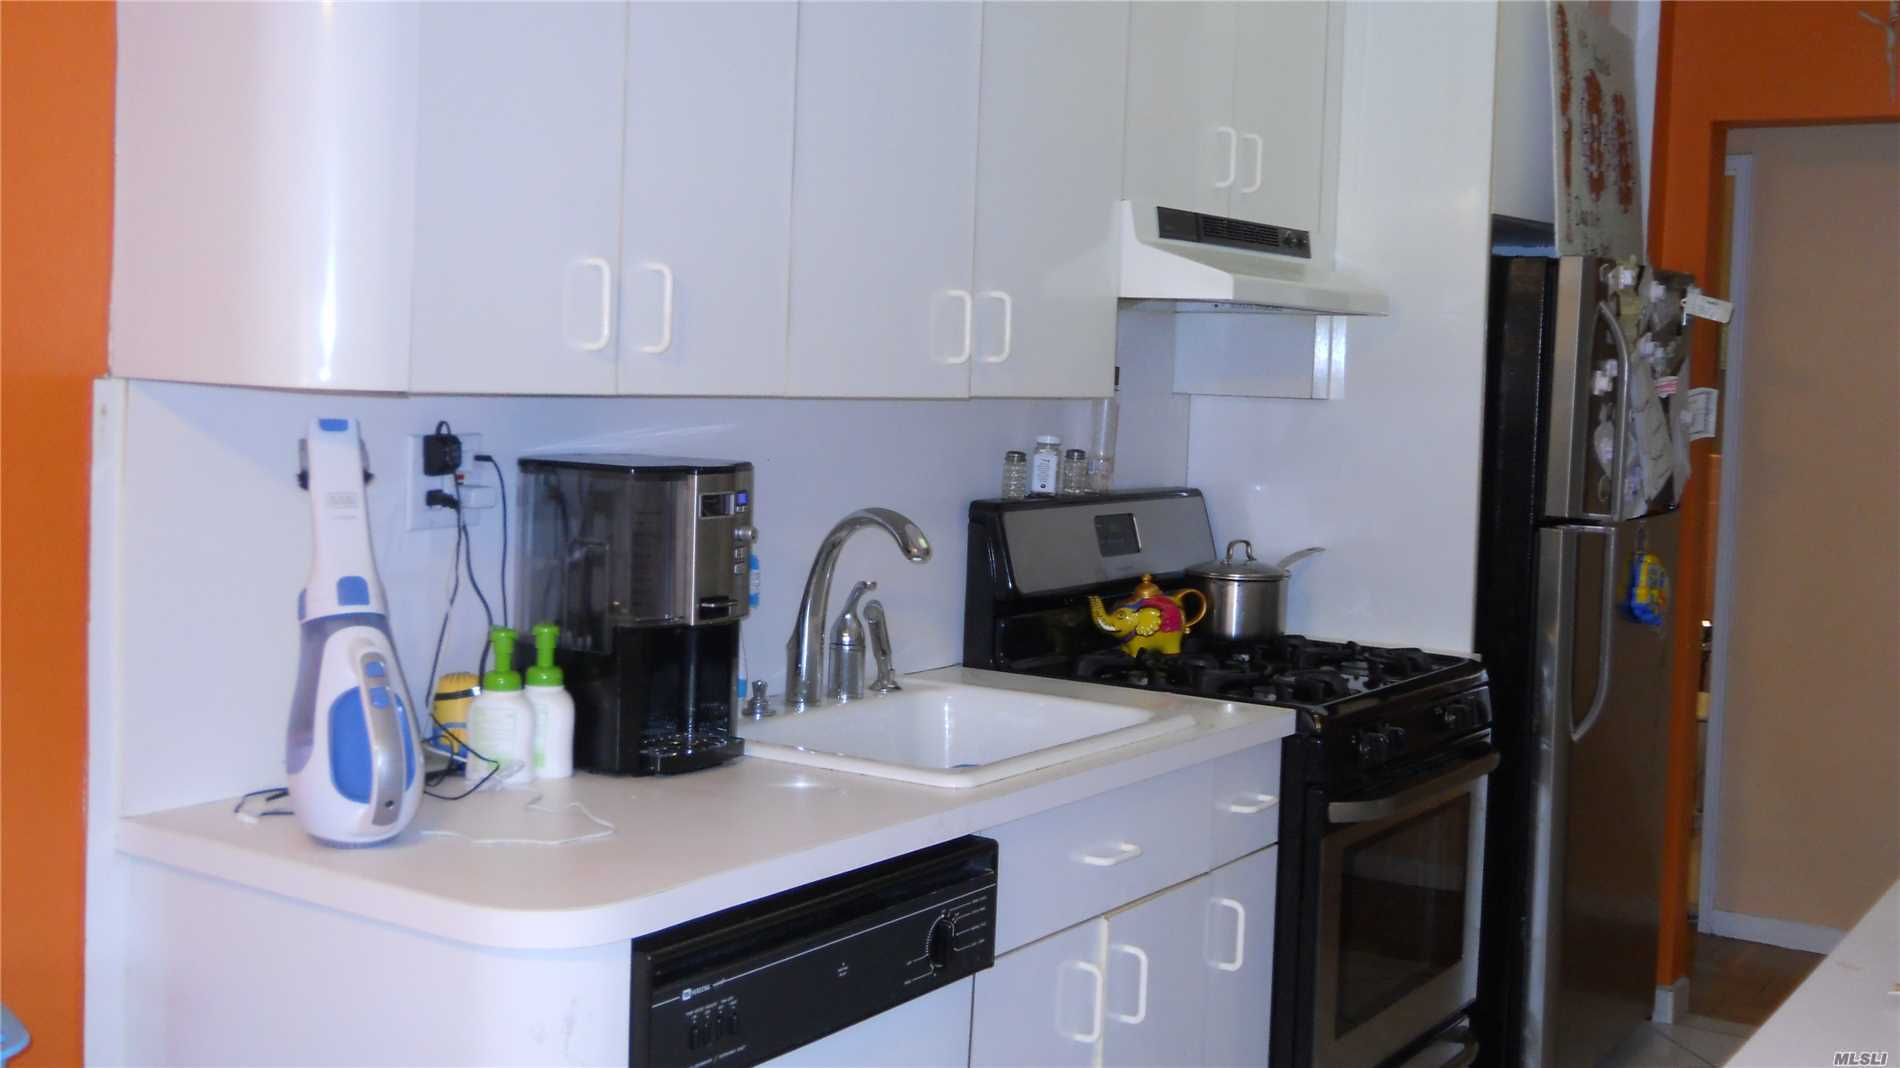 Large Corner Unit W/ Plenty Of Privacy, Parquet Floors, Mica Kit Cabinets W/ Stainless Steel Appl, Updated Mbr Bth, Huge Living Rm Window, Bringing In Loads Of Light, Storage Party Room For Fee, Cable Incl., Playground 320@35 Shares